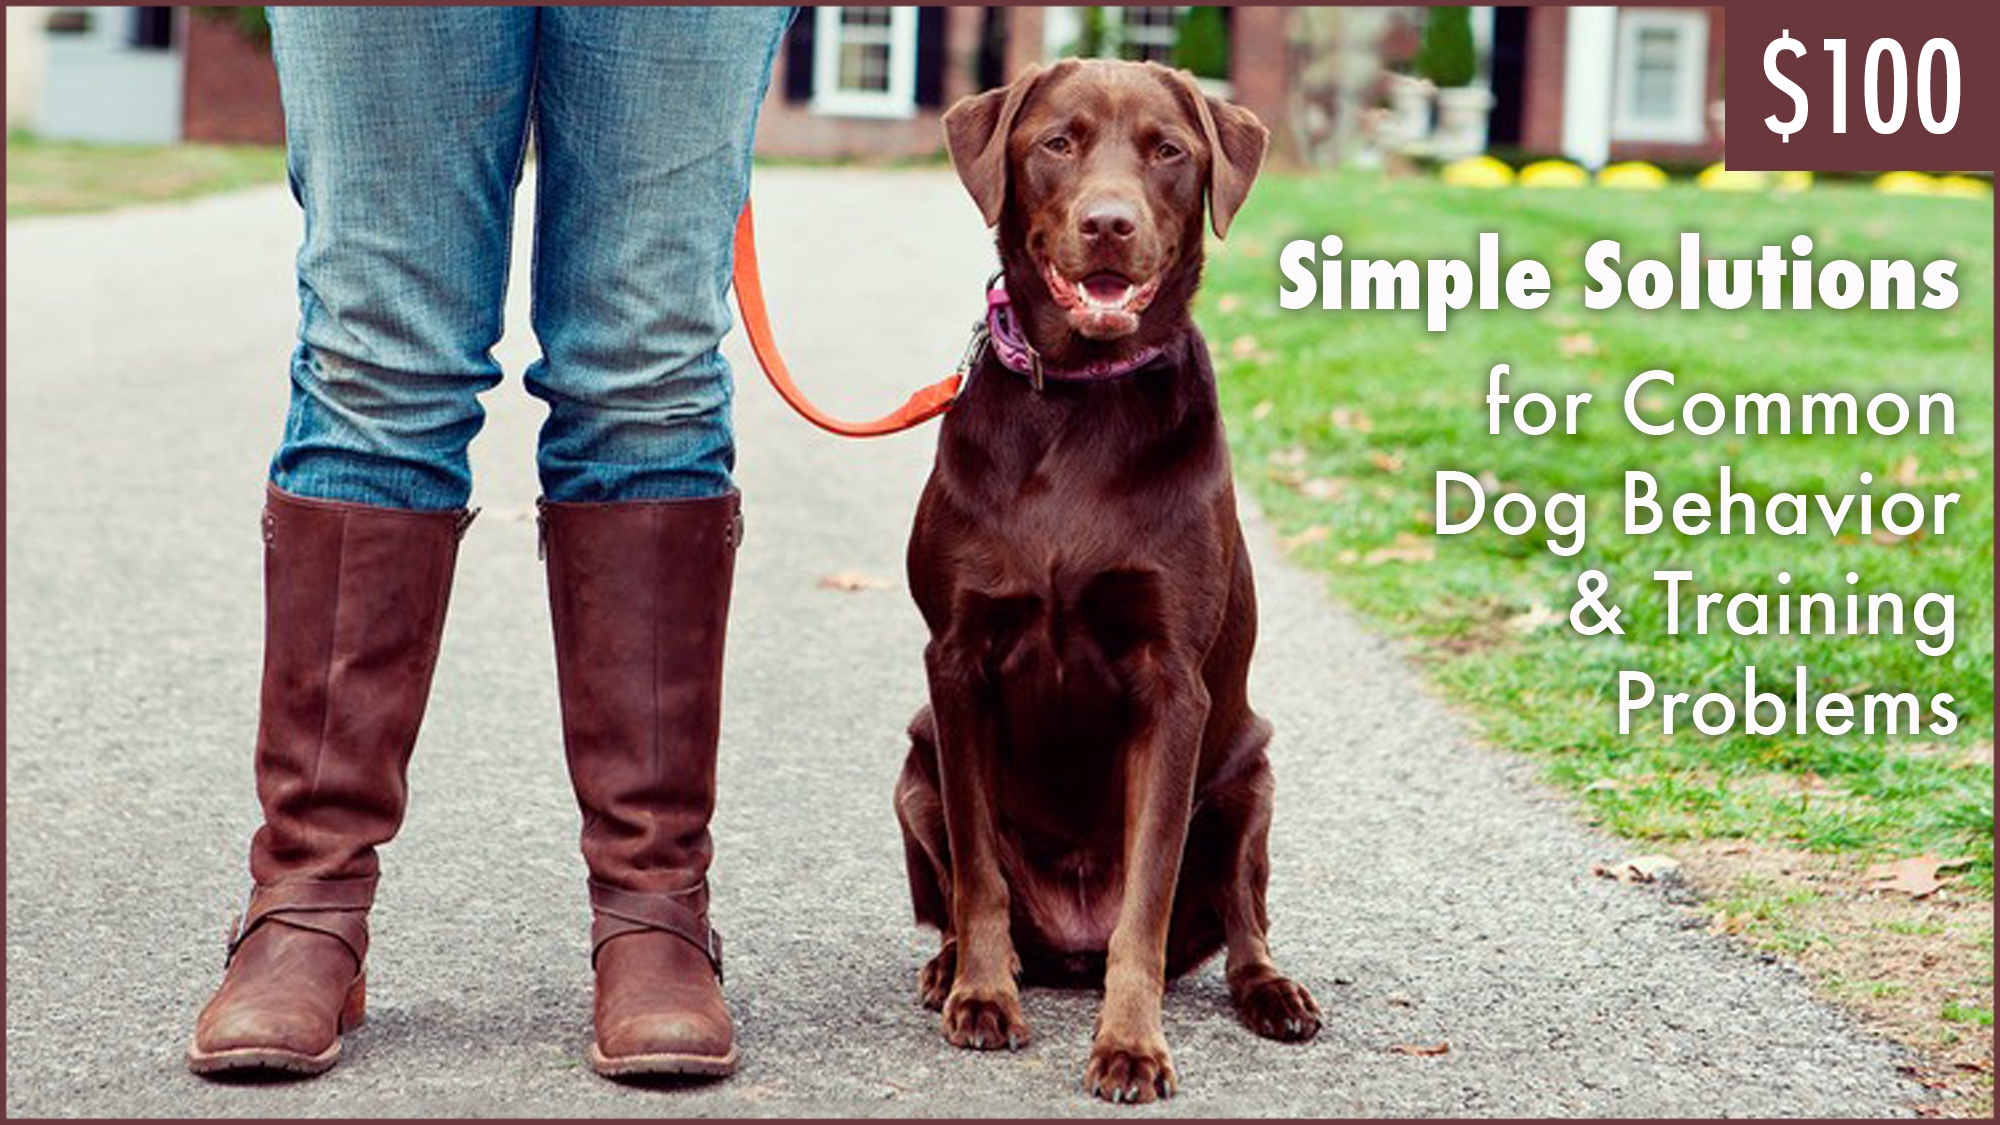 Lecture seminar by Dr. Ian Dunbar. Learn to address house soiling, chewing, barking, digging, separation anxiety, jumping up, pulling on leash and more. 6 hours of video, 6 CEUs,  $100 on Udemy.